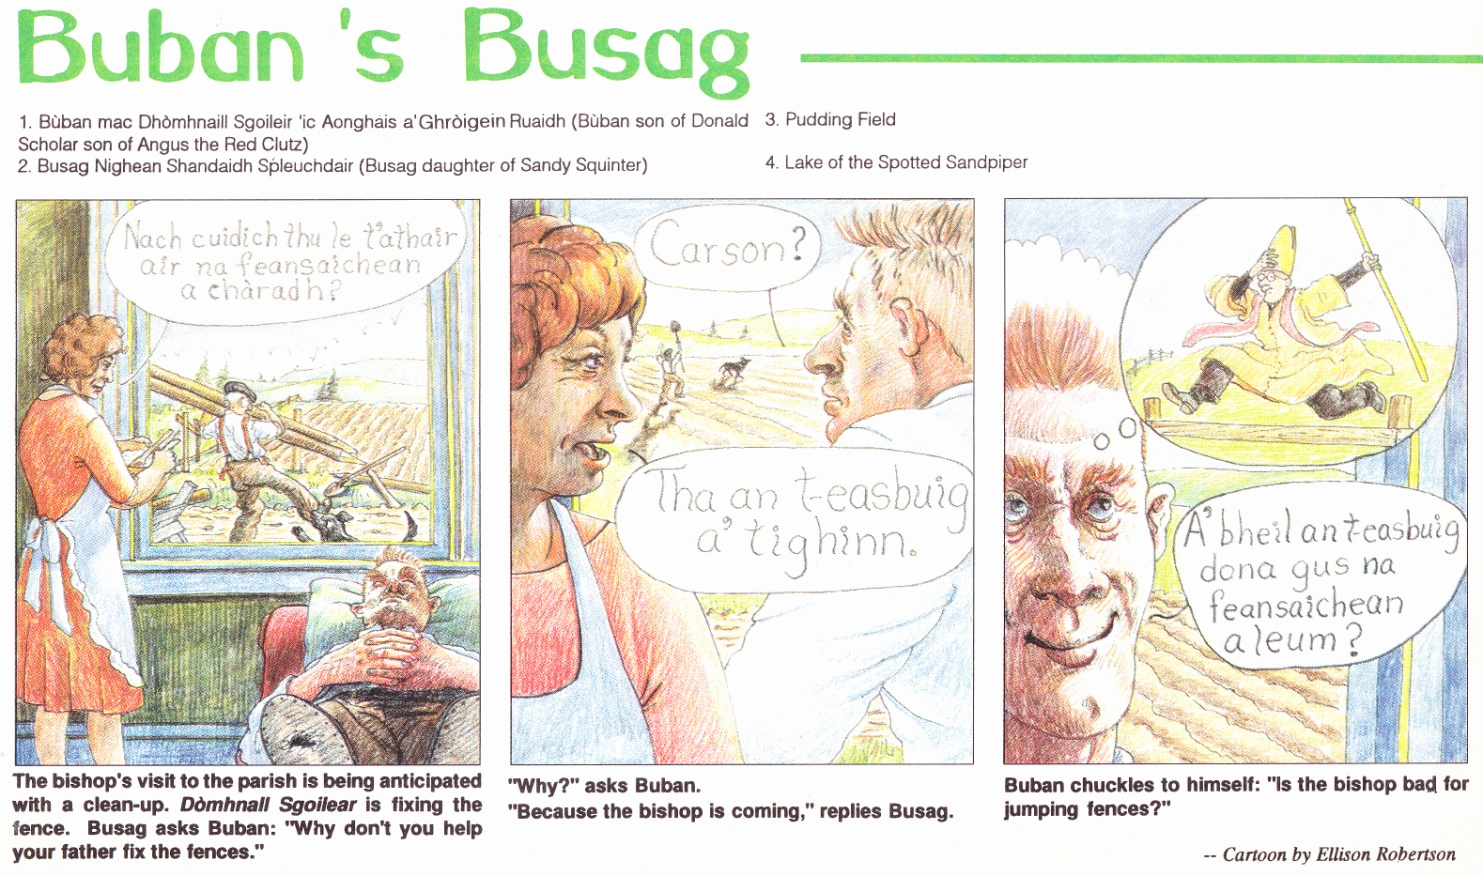 C:\Users\Robert\Documents\CARTOONING ILLUSTRATION ANIMATION\IMAGE CARTOON\IMAGE CARTOON B\BUBAN'S  BUSAG, AmBraighe, Autumn 1995, 24.jpg